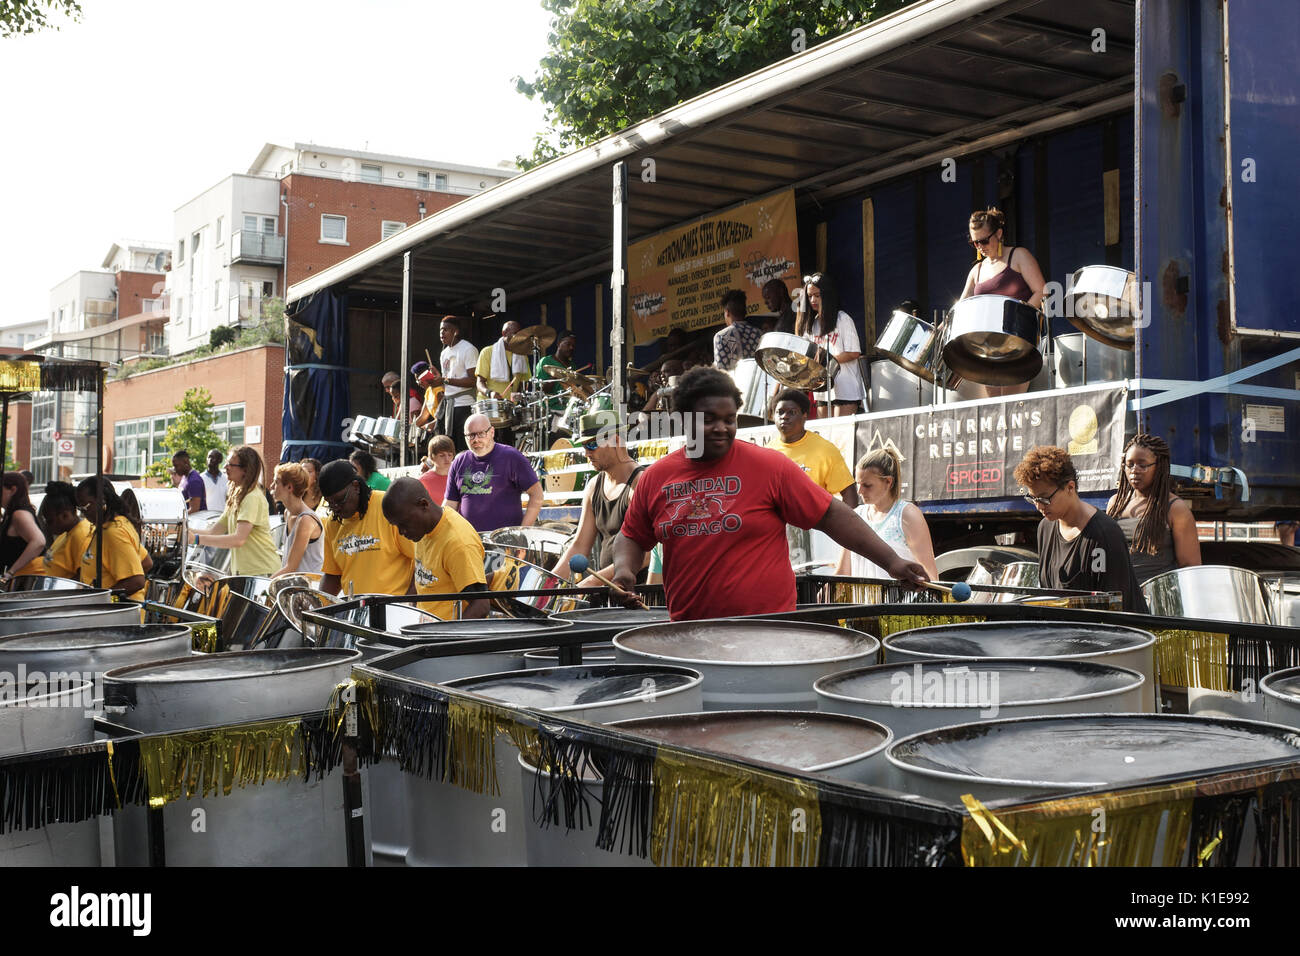 London, UK. 26th Aug, 2017. Steelpan Bands Panorama Notting Hill Carnival 2017. Steelpan bands prepare for judging at Horniman's Pleasance as London prepares to enjoy Notting Hill Carnival. Endurance, Metronome, Mangrove steelbands tune up. Brazilian drumming troupe Timbao entertains the waiting crowd and a Reggae's Got Talent looks for new reggae artistes and a poster cries out for Justice for Grenfell and First Aid is administered in a park near pissoir type public conveniences. Credit: Peter Hogan/Alamy Live News - Stock Image